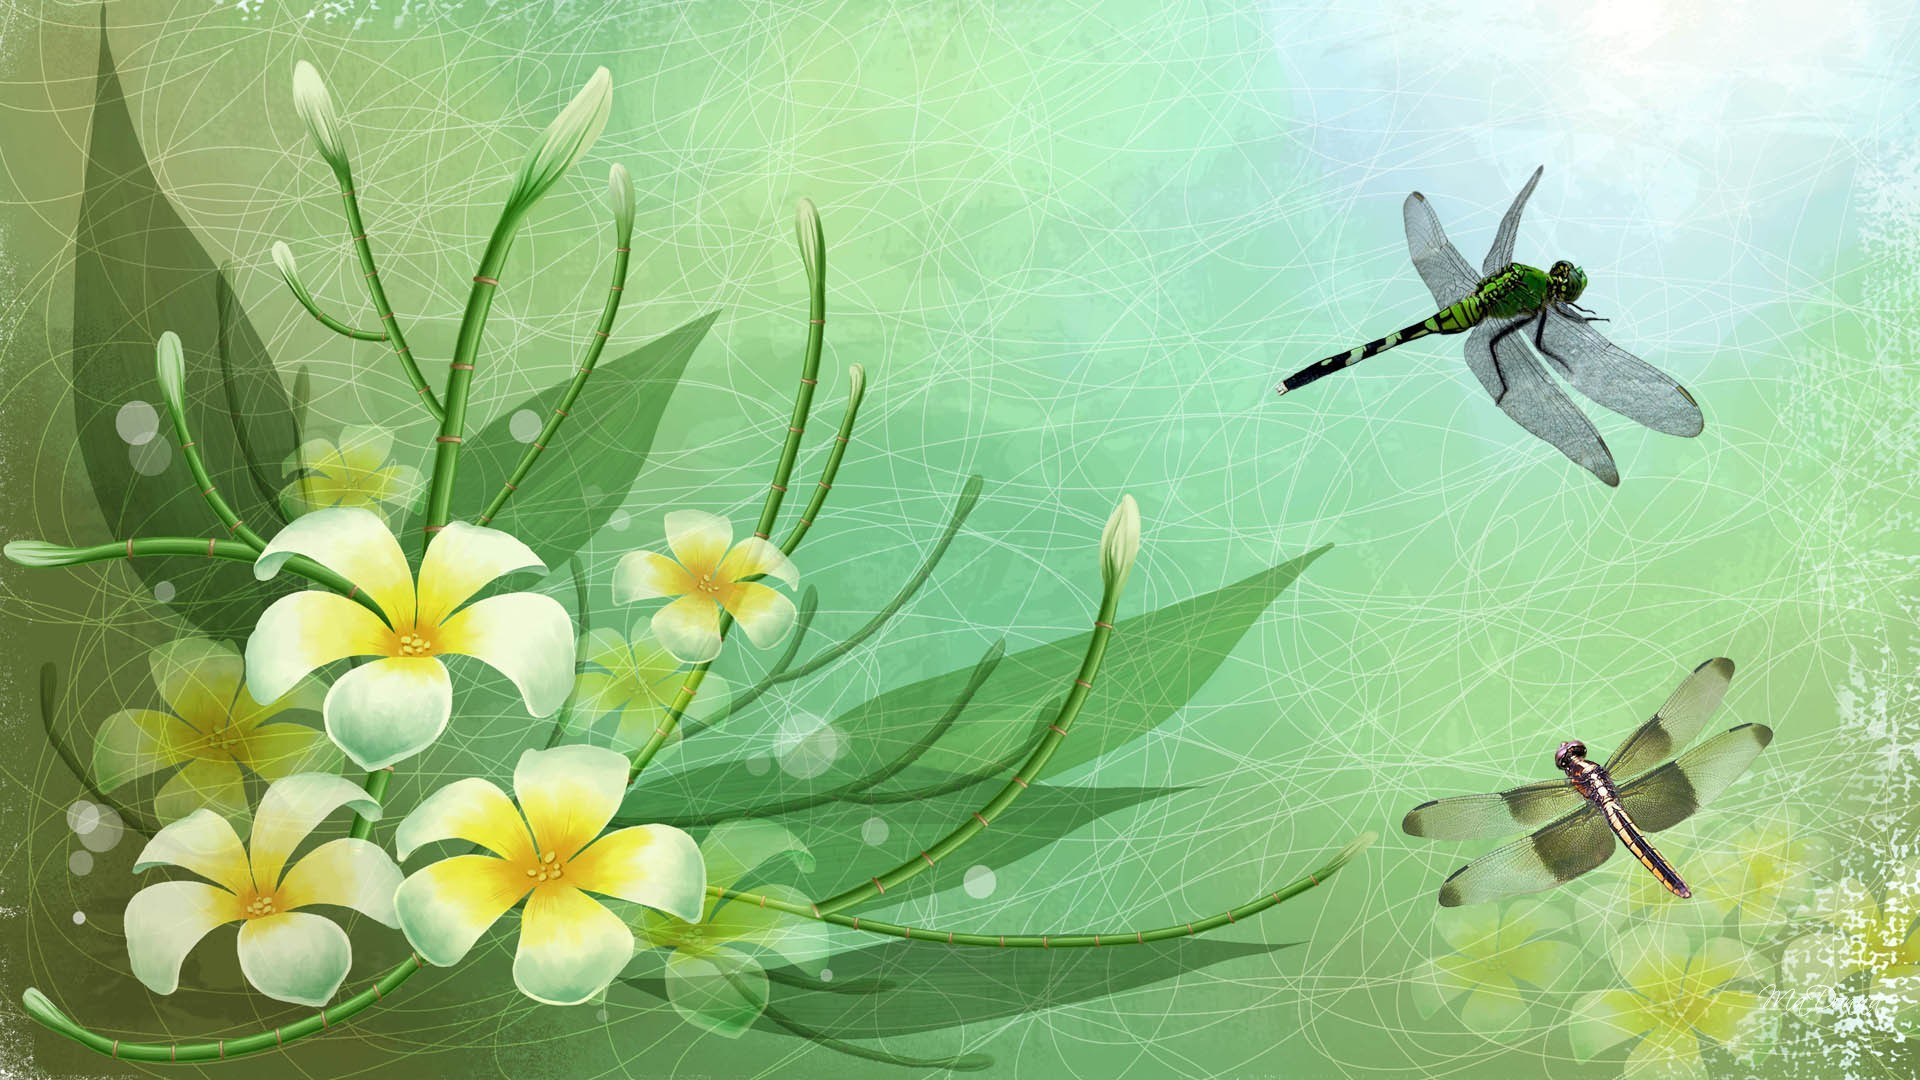 Dragonfly Art Background Wallpaper